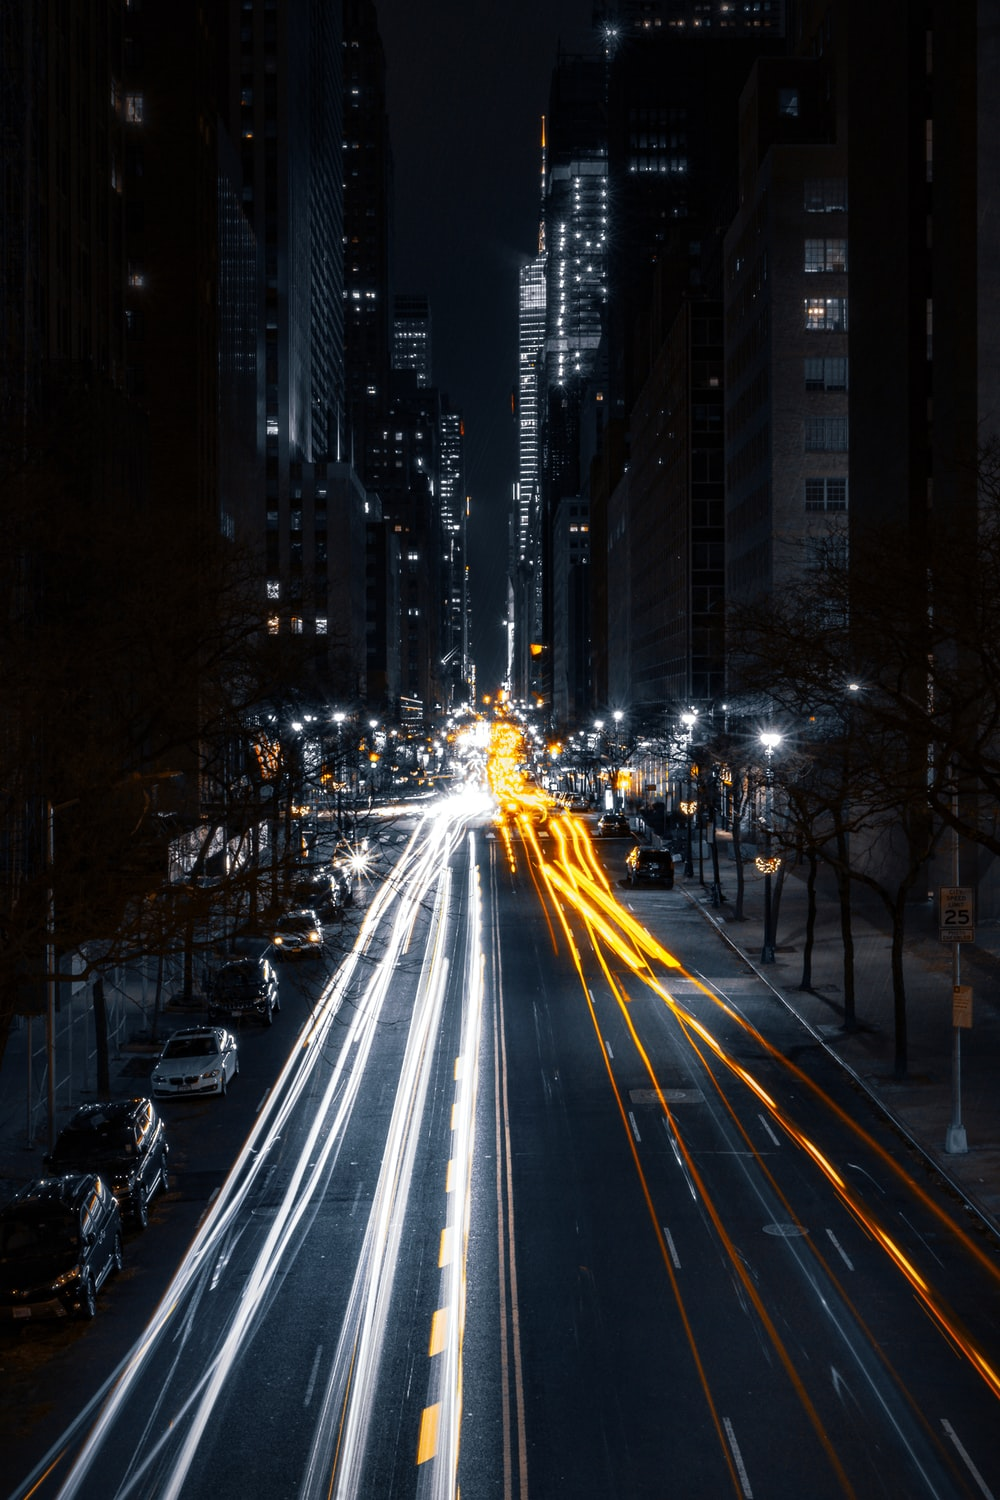 timelapse photography of car lights